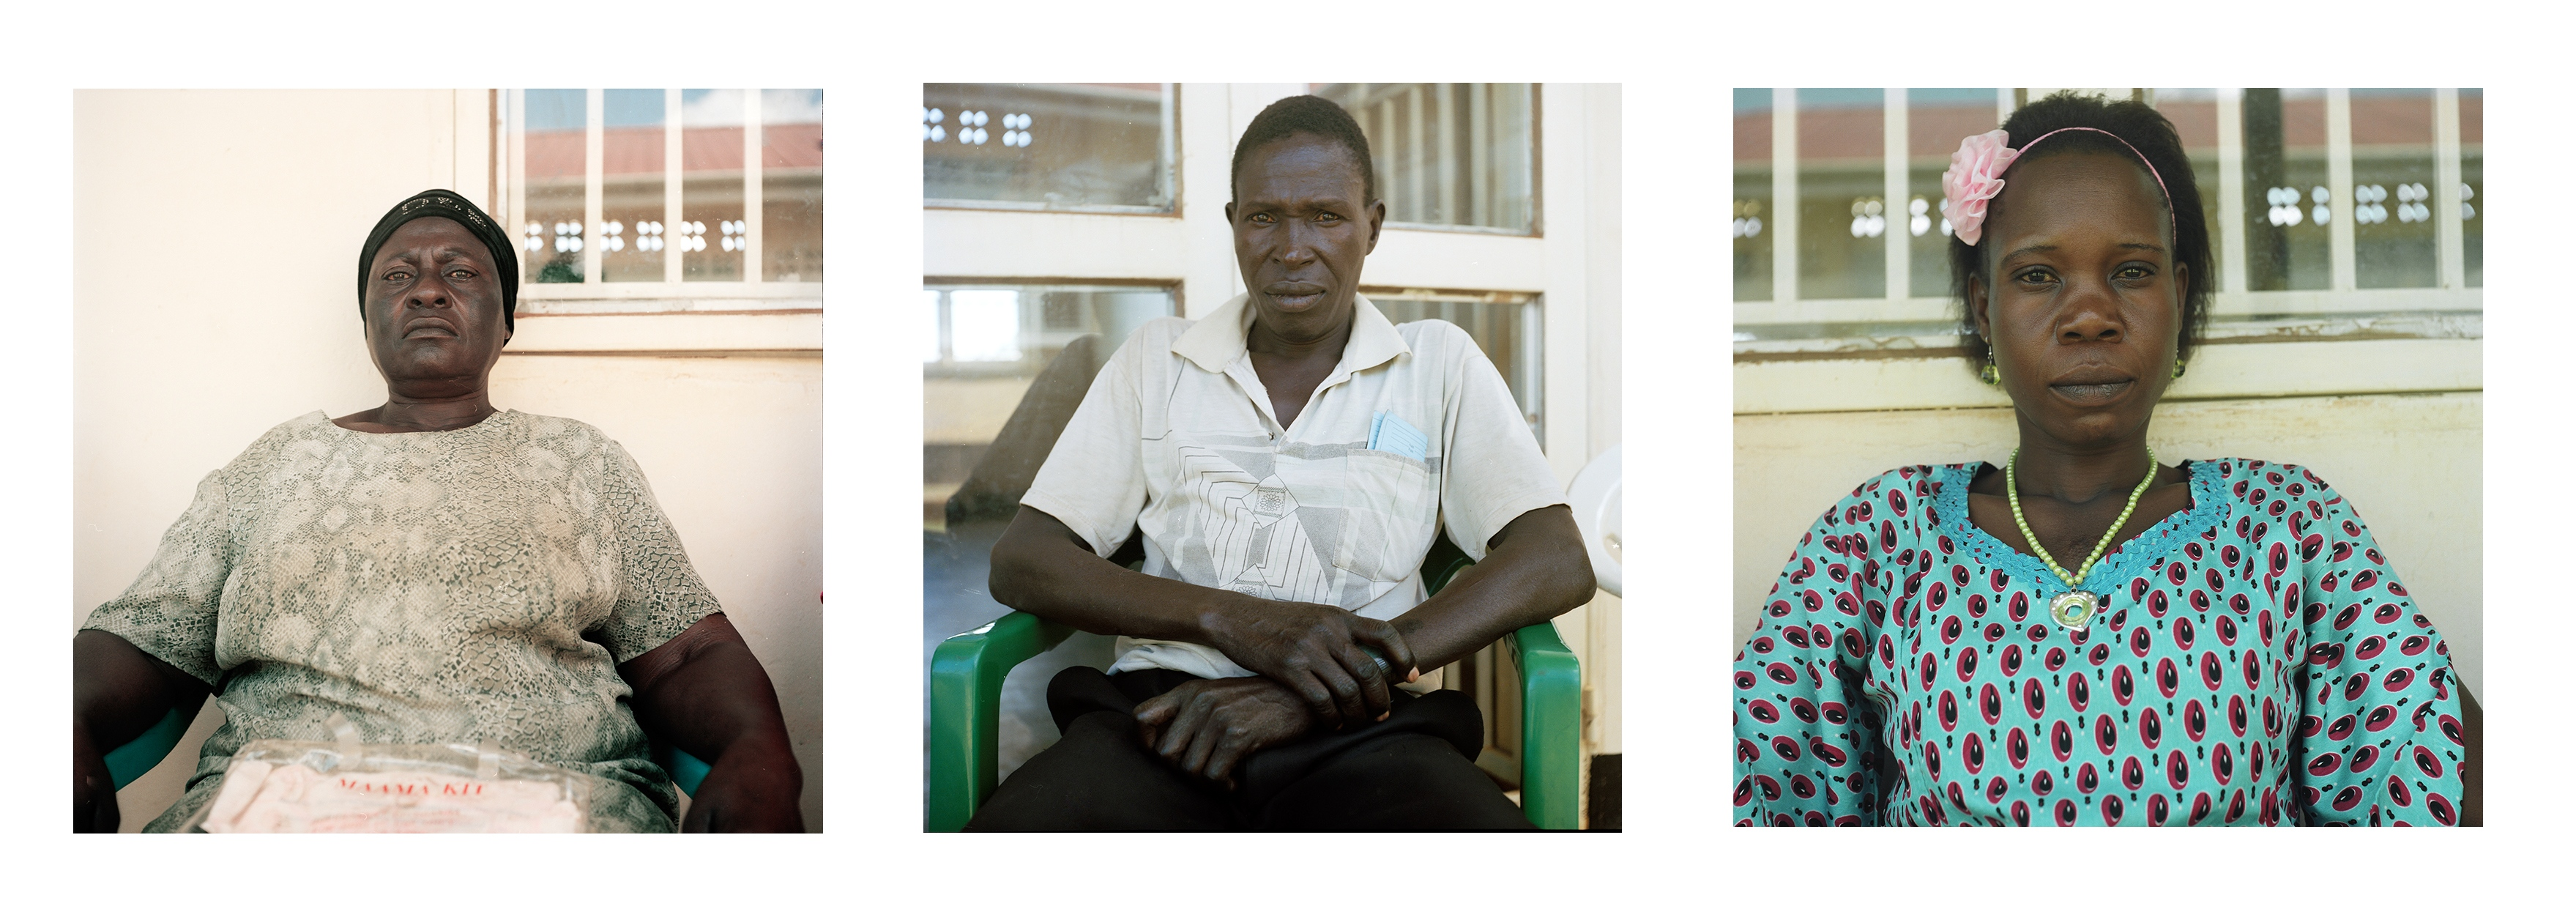 Clients waiting for ART treatment at the Lumino Health Center III in the Busia district of Uganda.